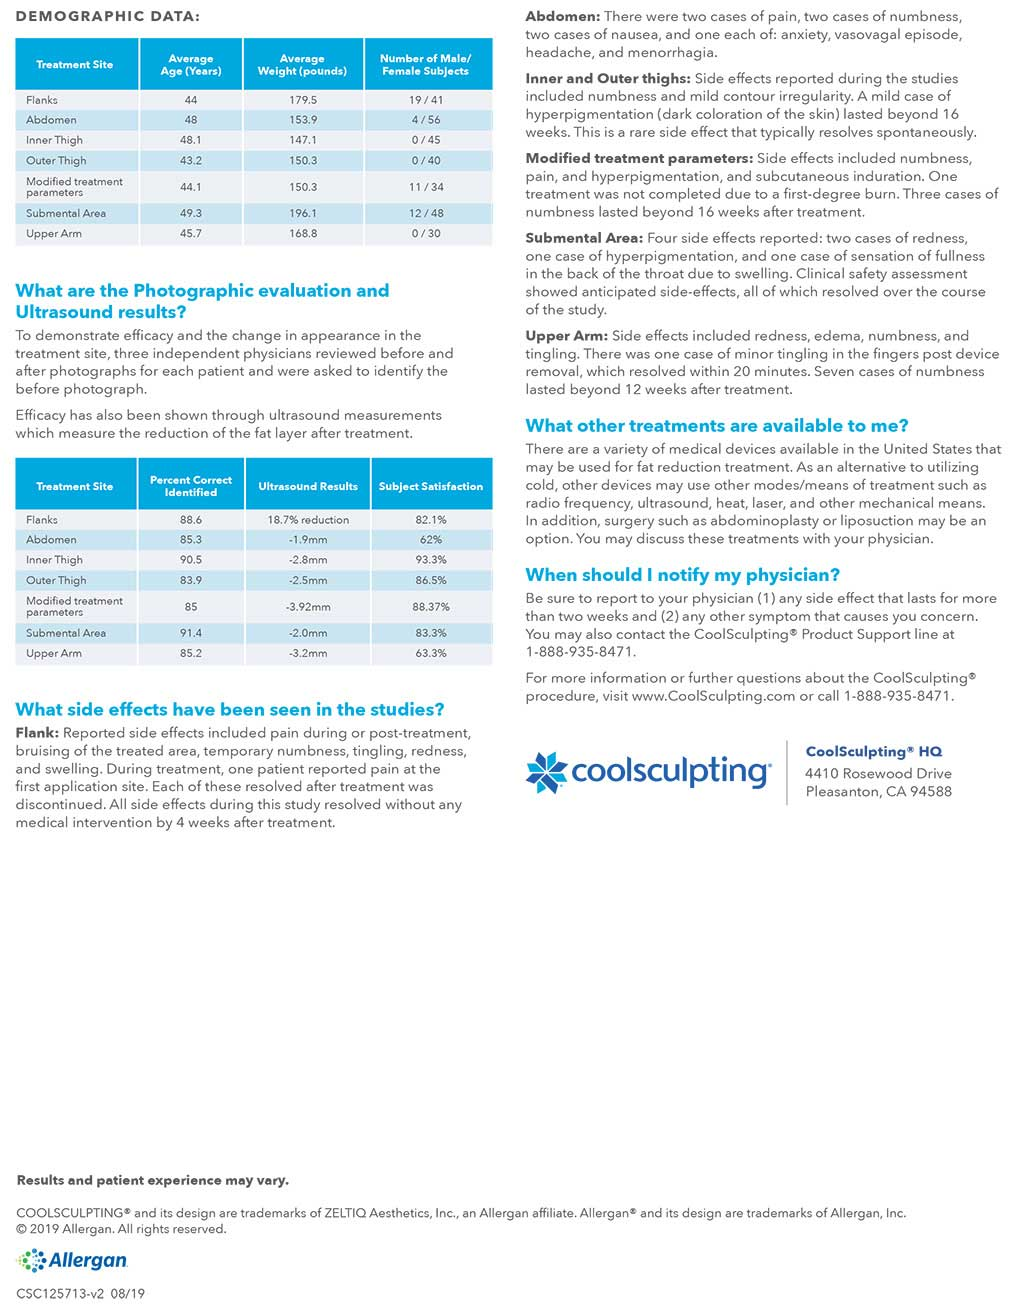 CoolSculpting full safety info